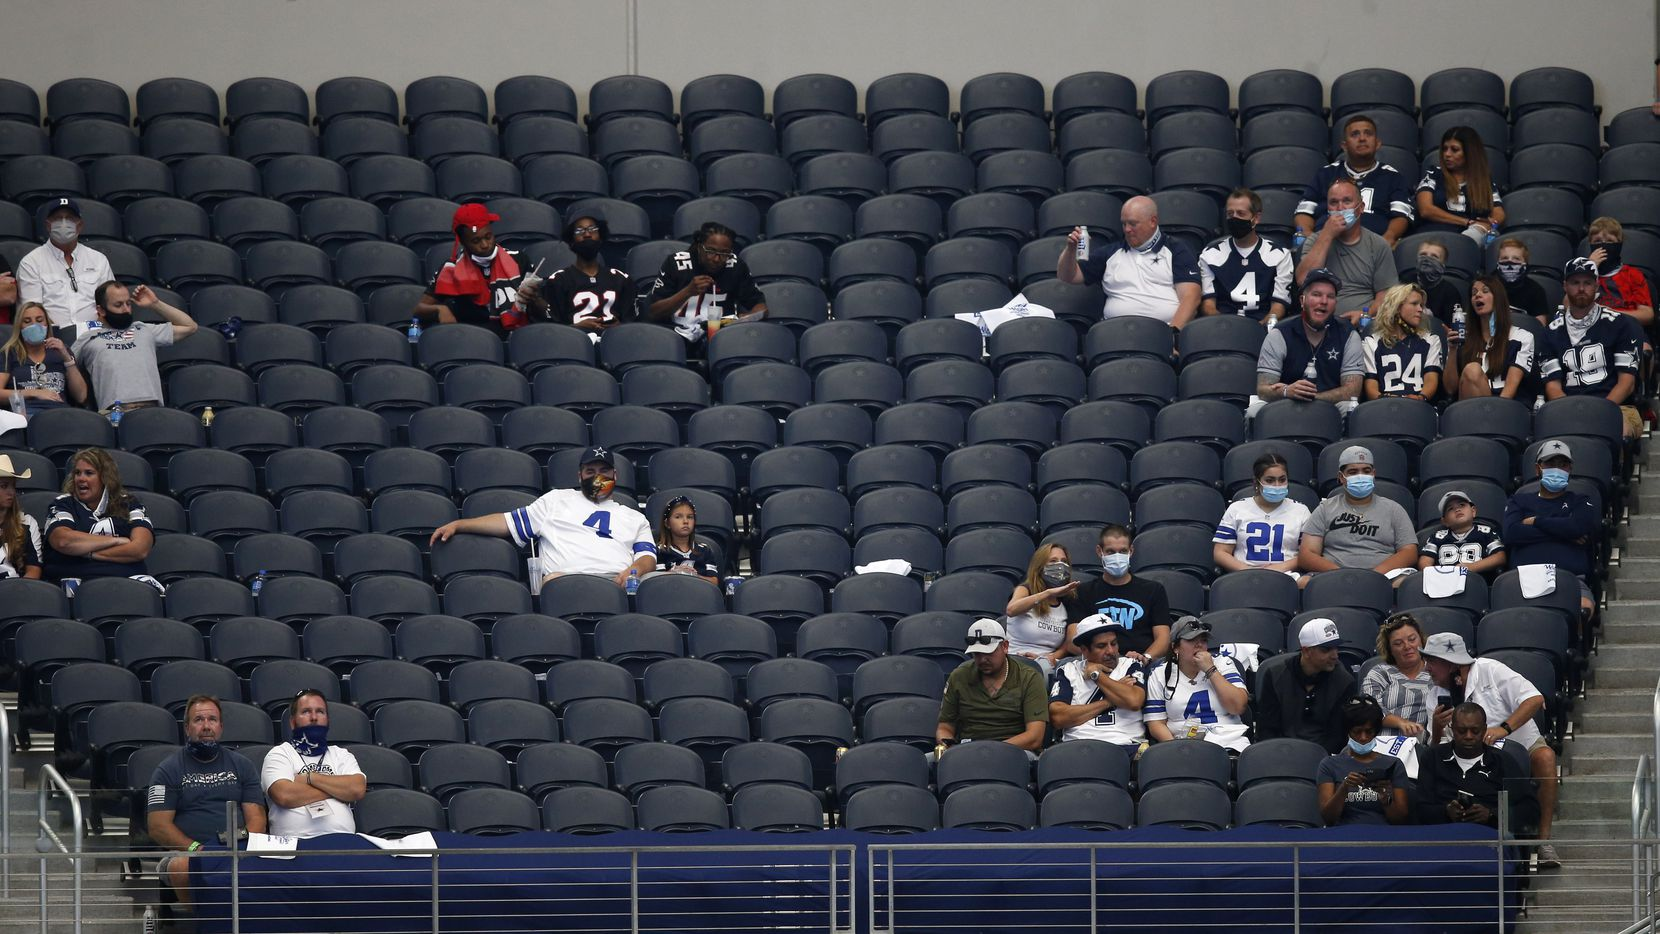 Dallas Cowboys fans watch the game between the Dallas Cowboys and Atlanta Falcons in the home opener at AT&T Stadium in Arlington, Texas on Sunday, September 20, 2020.